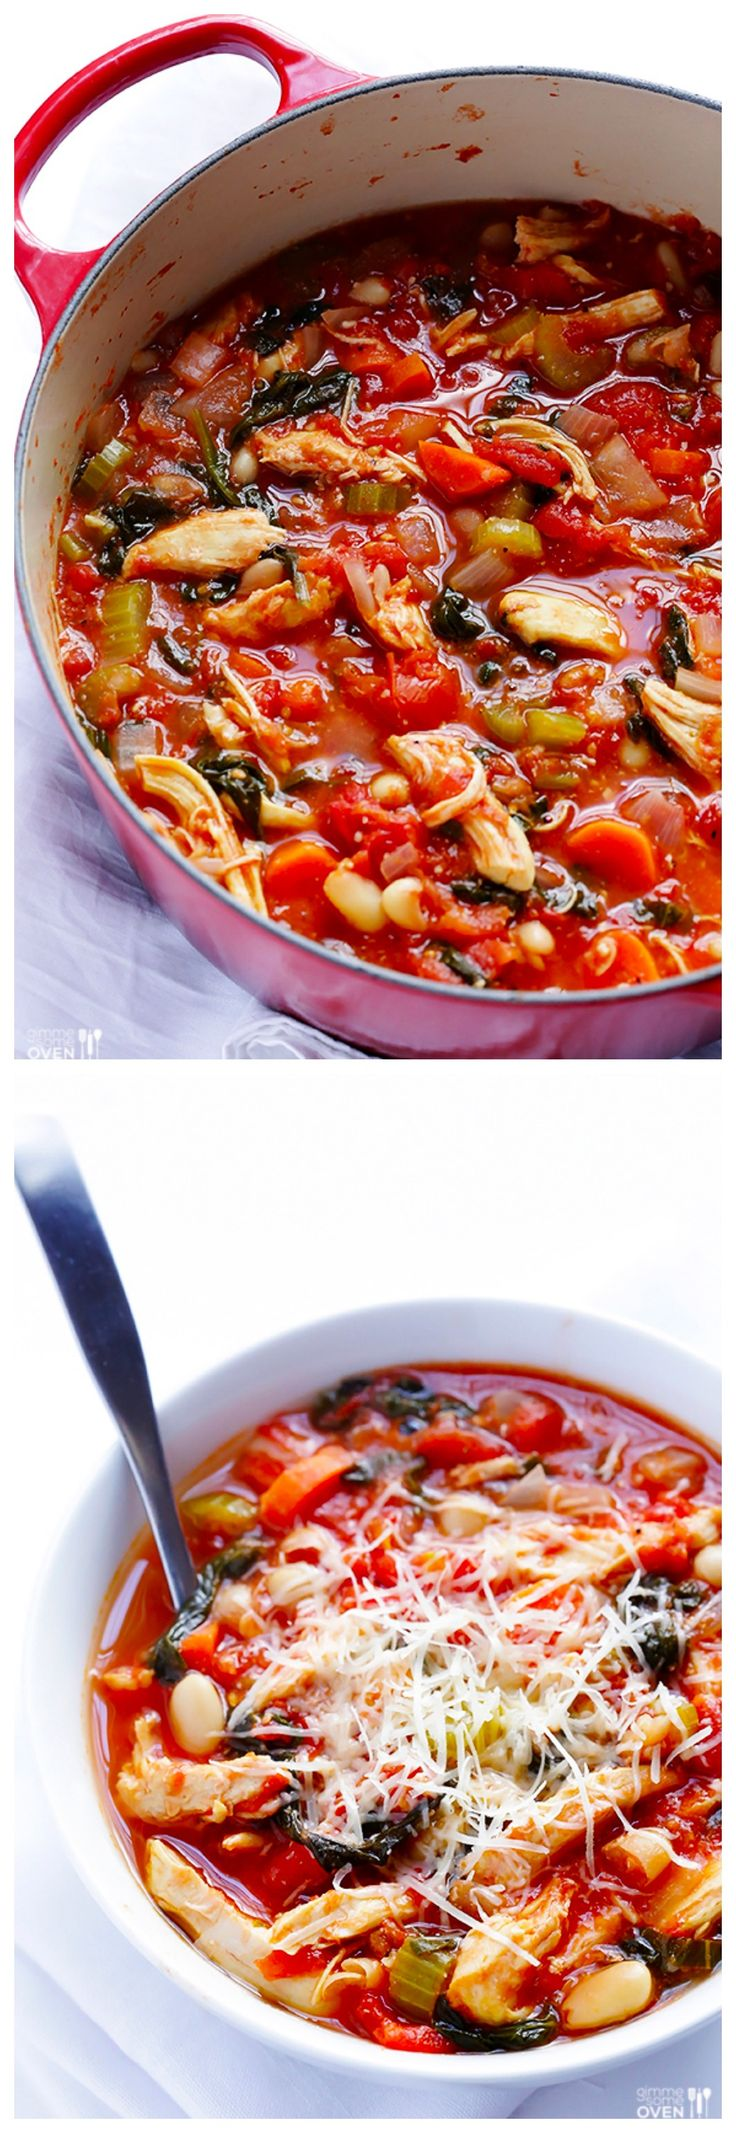 Tomato Basil Chicken Stew -- comforting, simple, and ready in under 30 minutes | gimmesomeoven.com #soup #recipe: Basil Chicken, Soups Stews Chilis, Soups Recipes, Easy Recipes, 30 Minute, Chicken Stew, Tomatoes Basil, Soup Recipes, Gimmesomeoven Com Soups